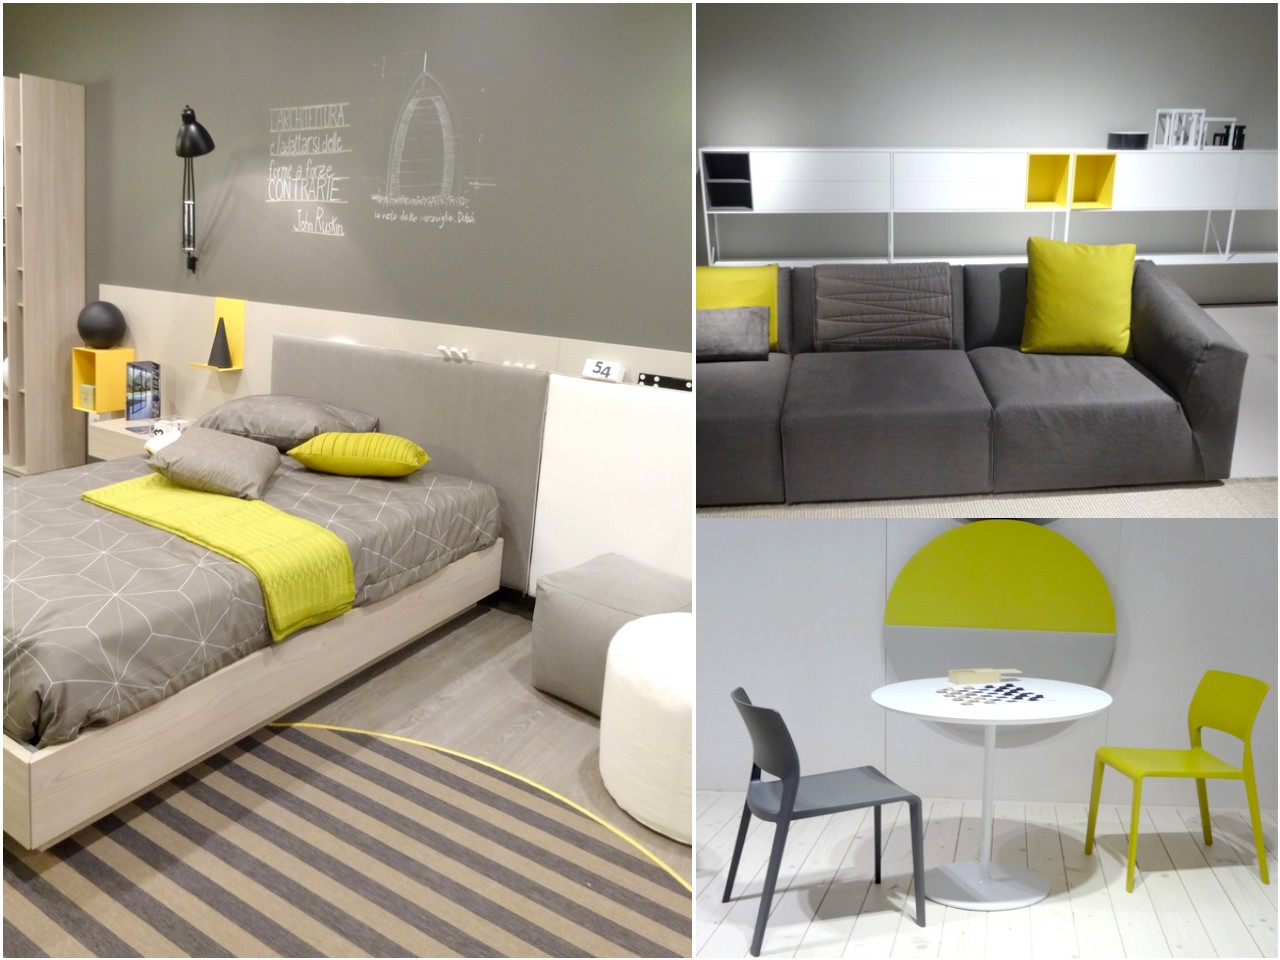 Razones Para Decorar Con Colores Claros Dise O E Interiorismo  # Muebles Ultimas Tendencias